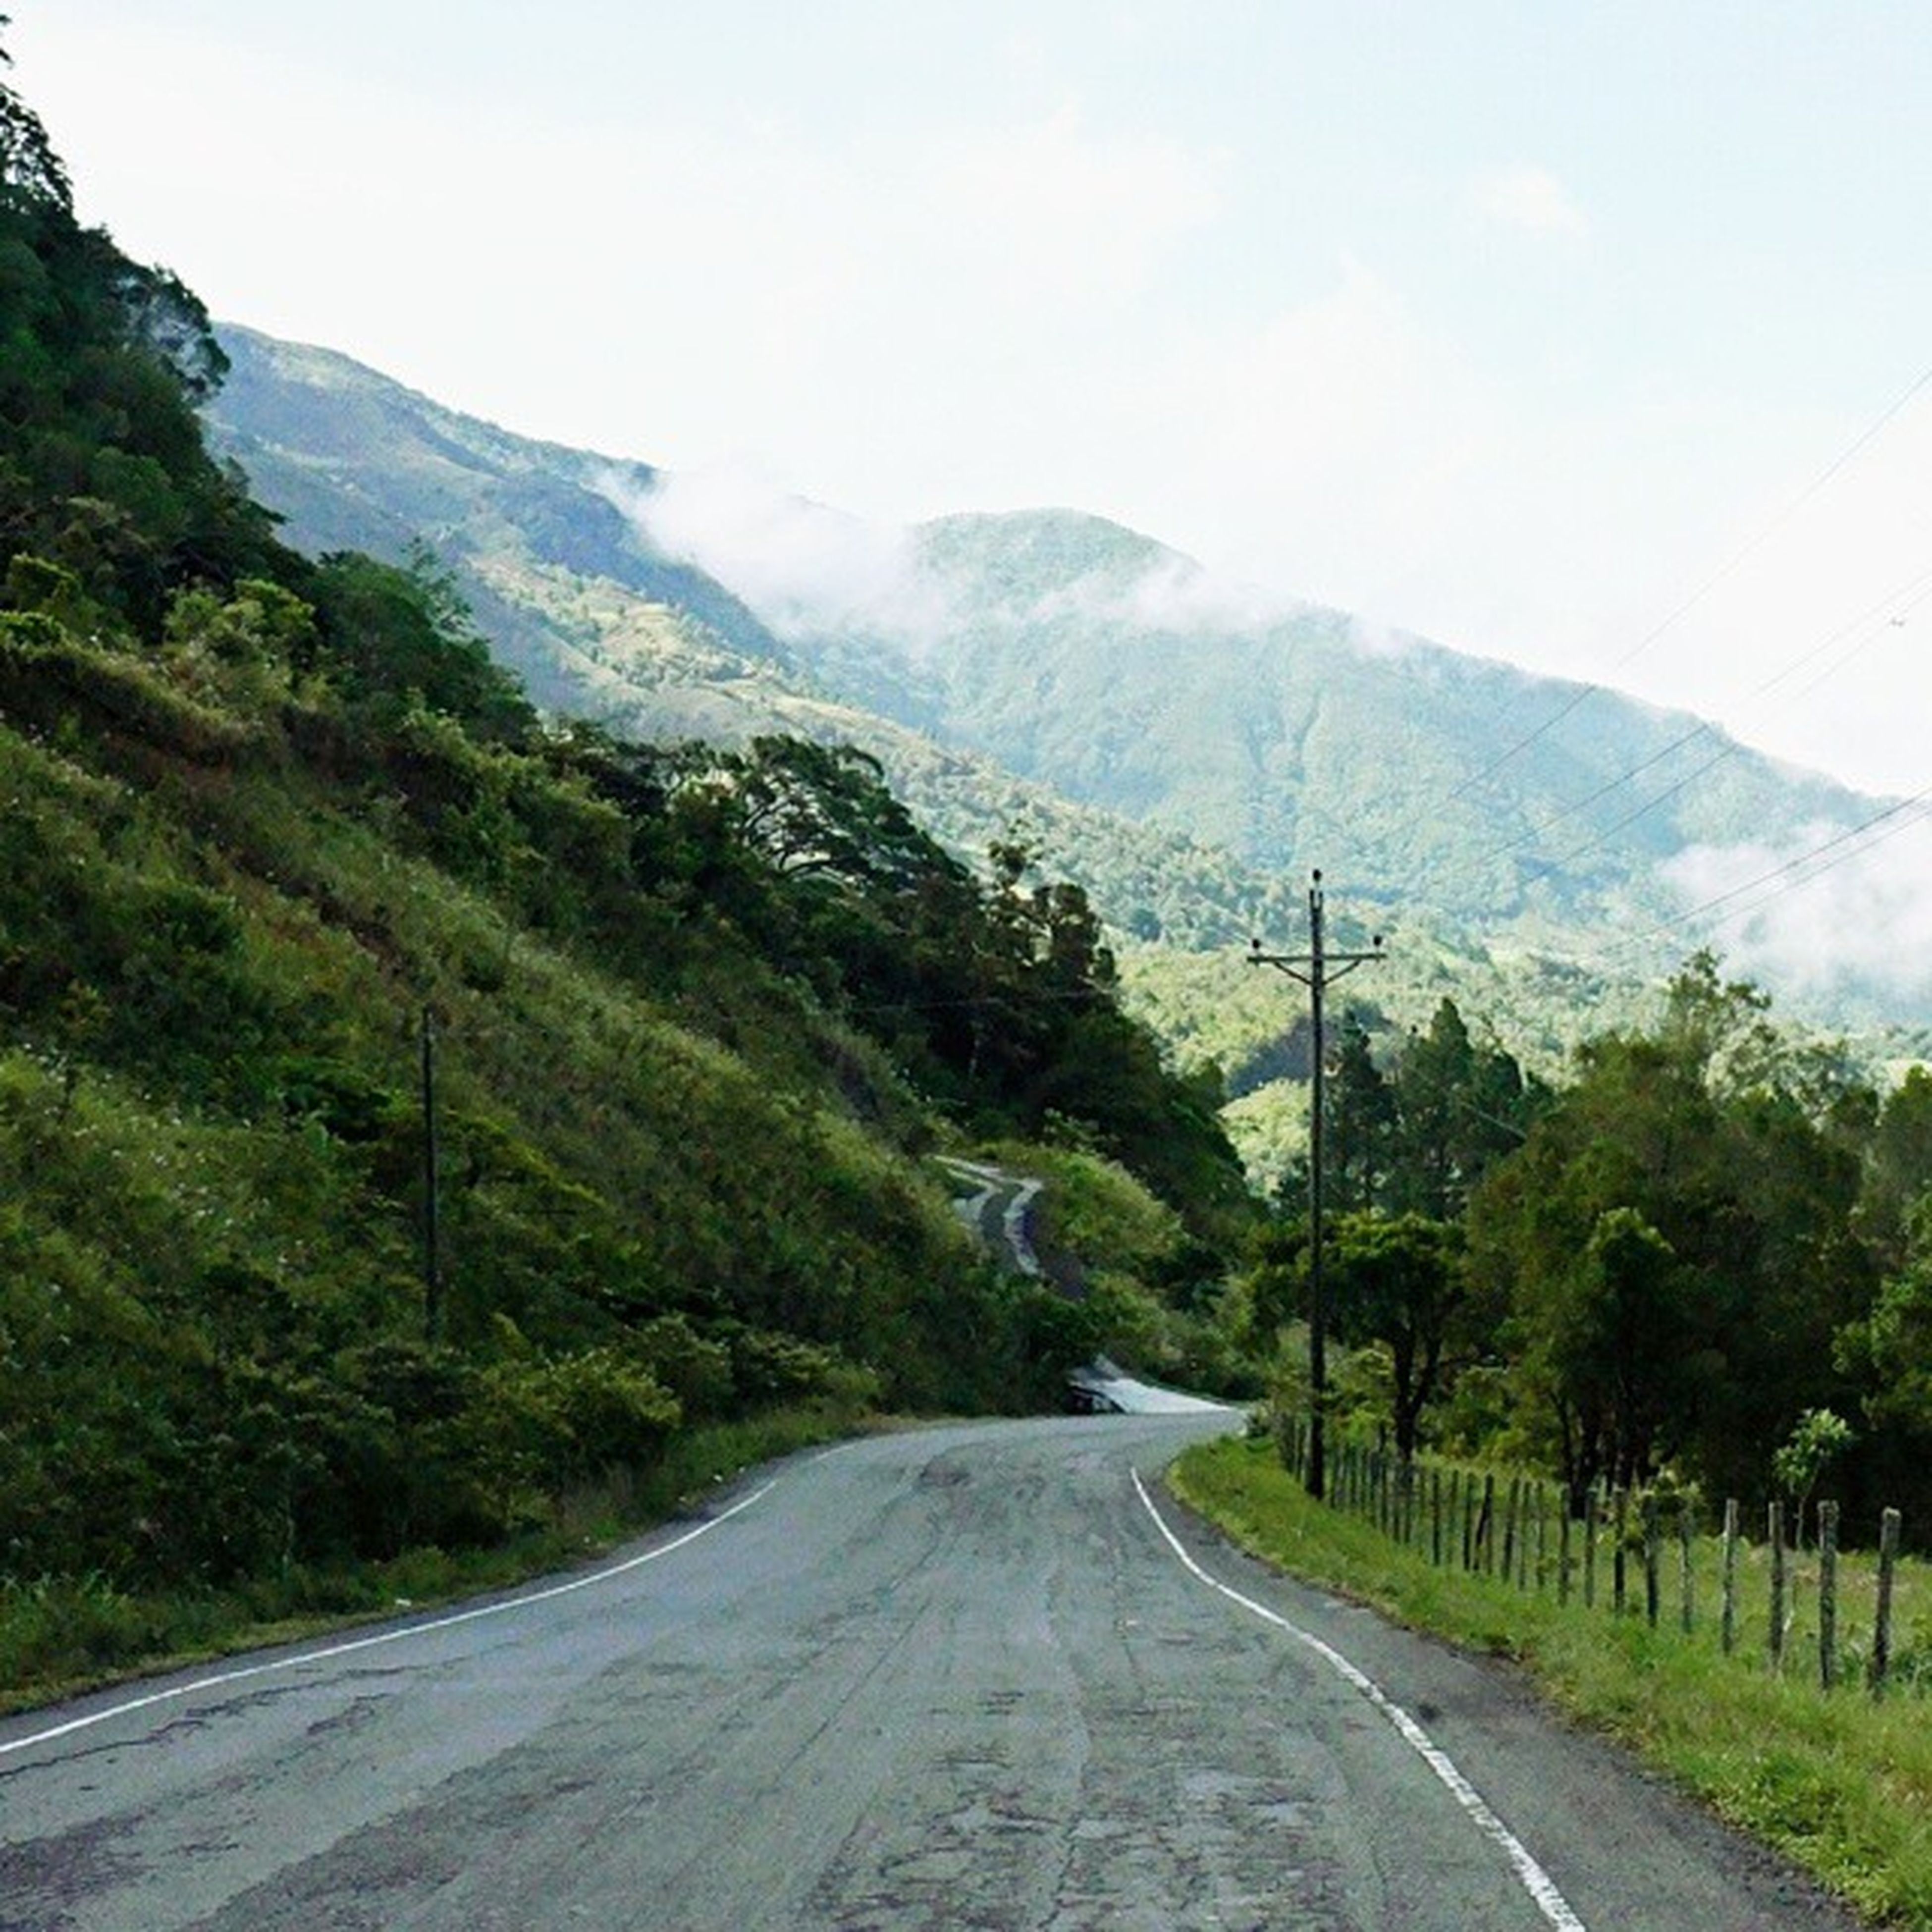 Road trip! 🚗 Intothewild Mountainmadness Explore Adventurebound roadtrippin travelbug panama